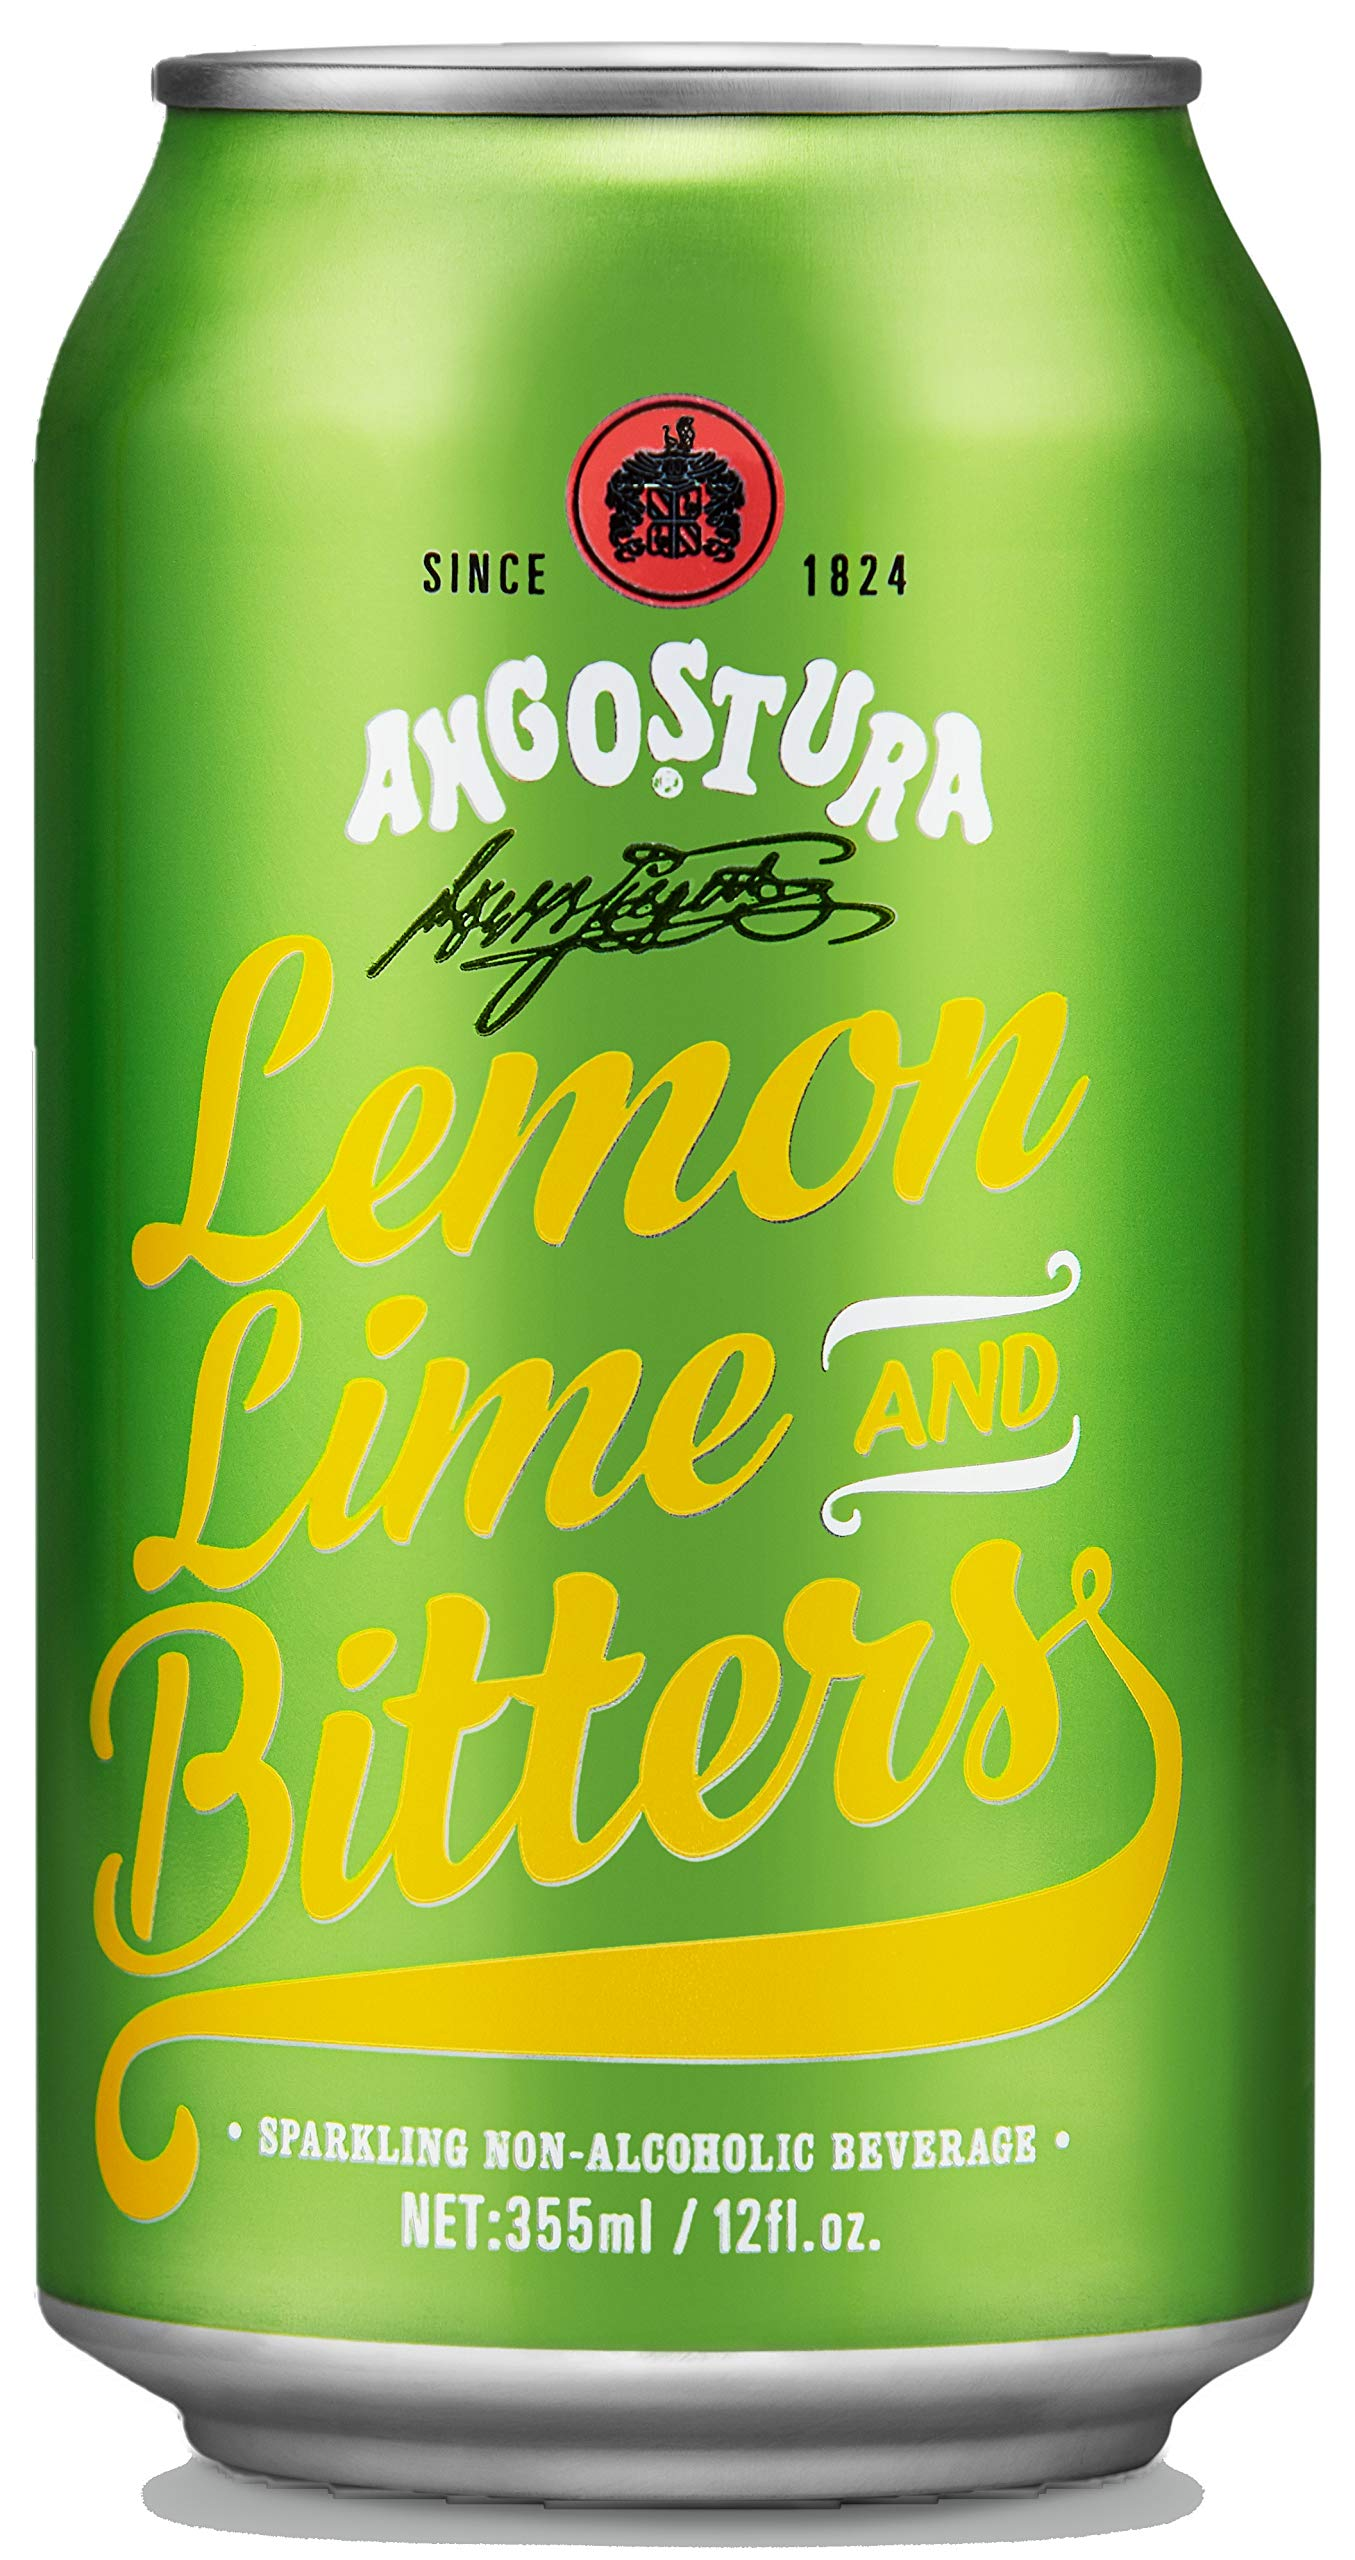 Angostura Lemon, Lime & Bitters, Non-Alcoholic Soda Cocktail Mixer, 12 fl oz Cans, 12 Pack